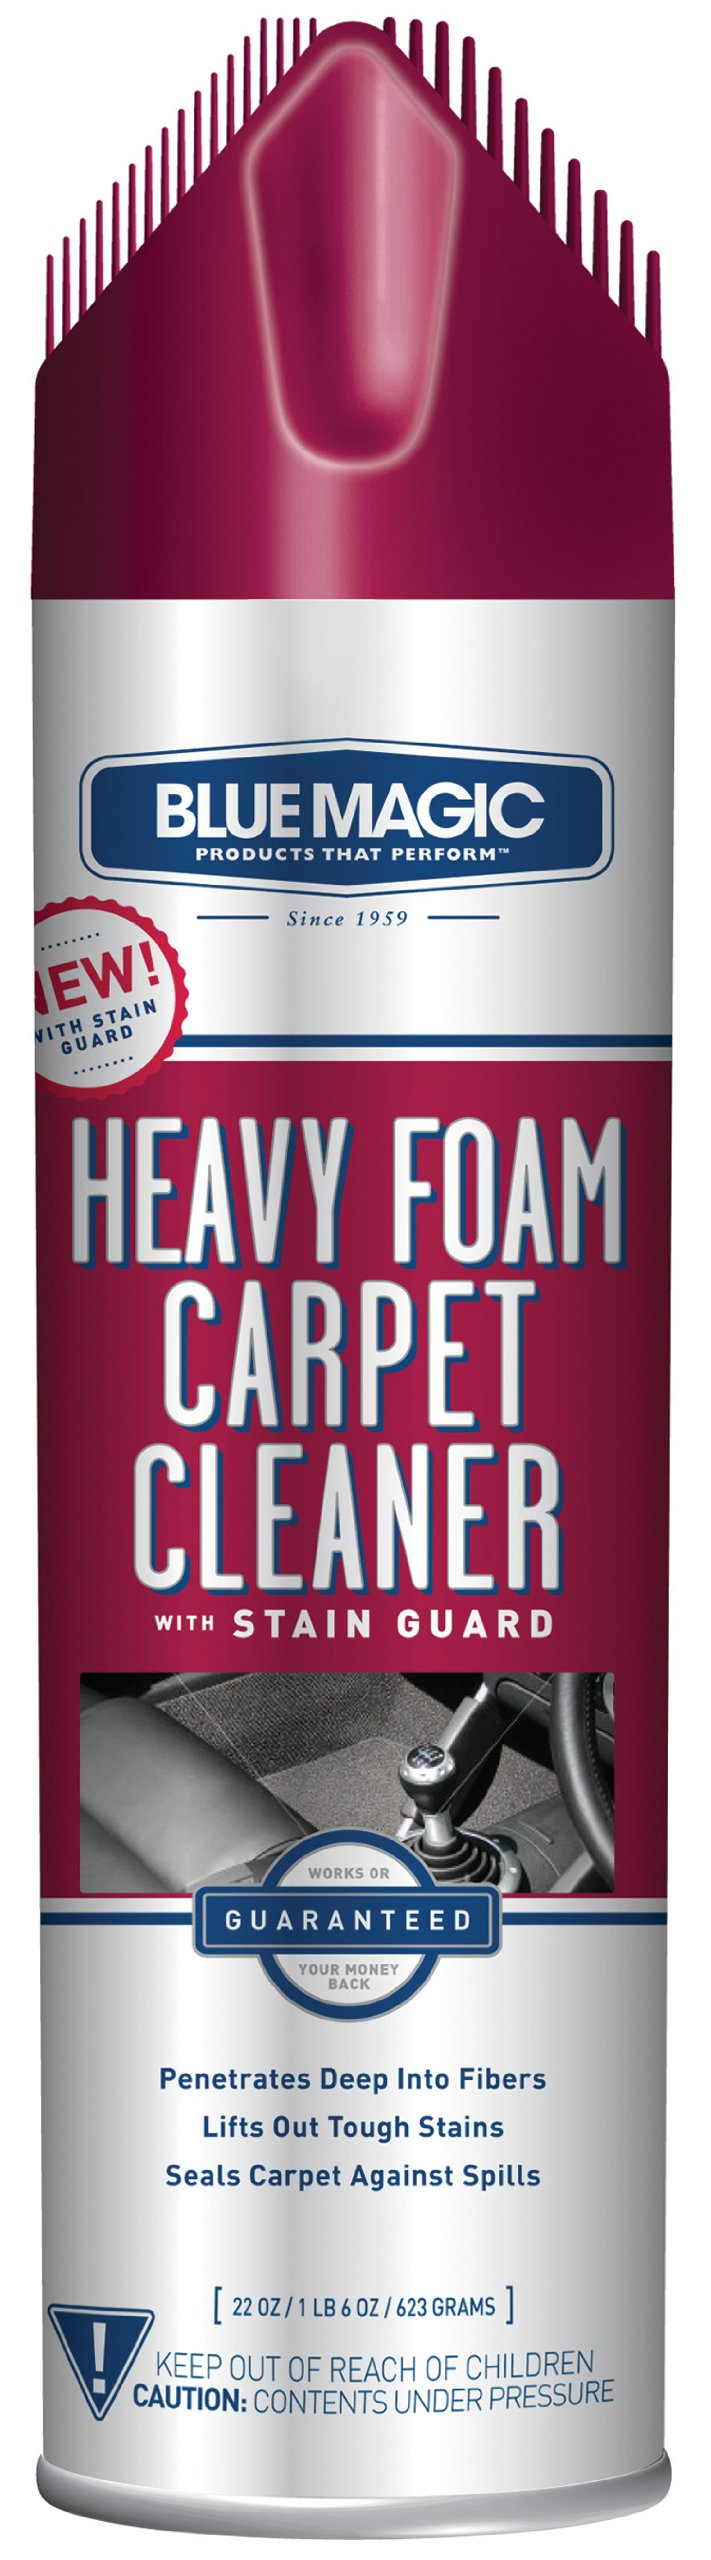 Blue Magic 912 Heavy Foam Carpet Cleaner with Stain Guard - 22 oz.